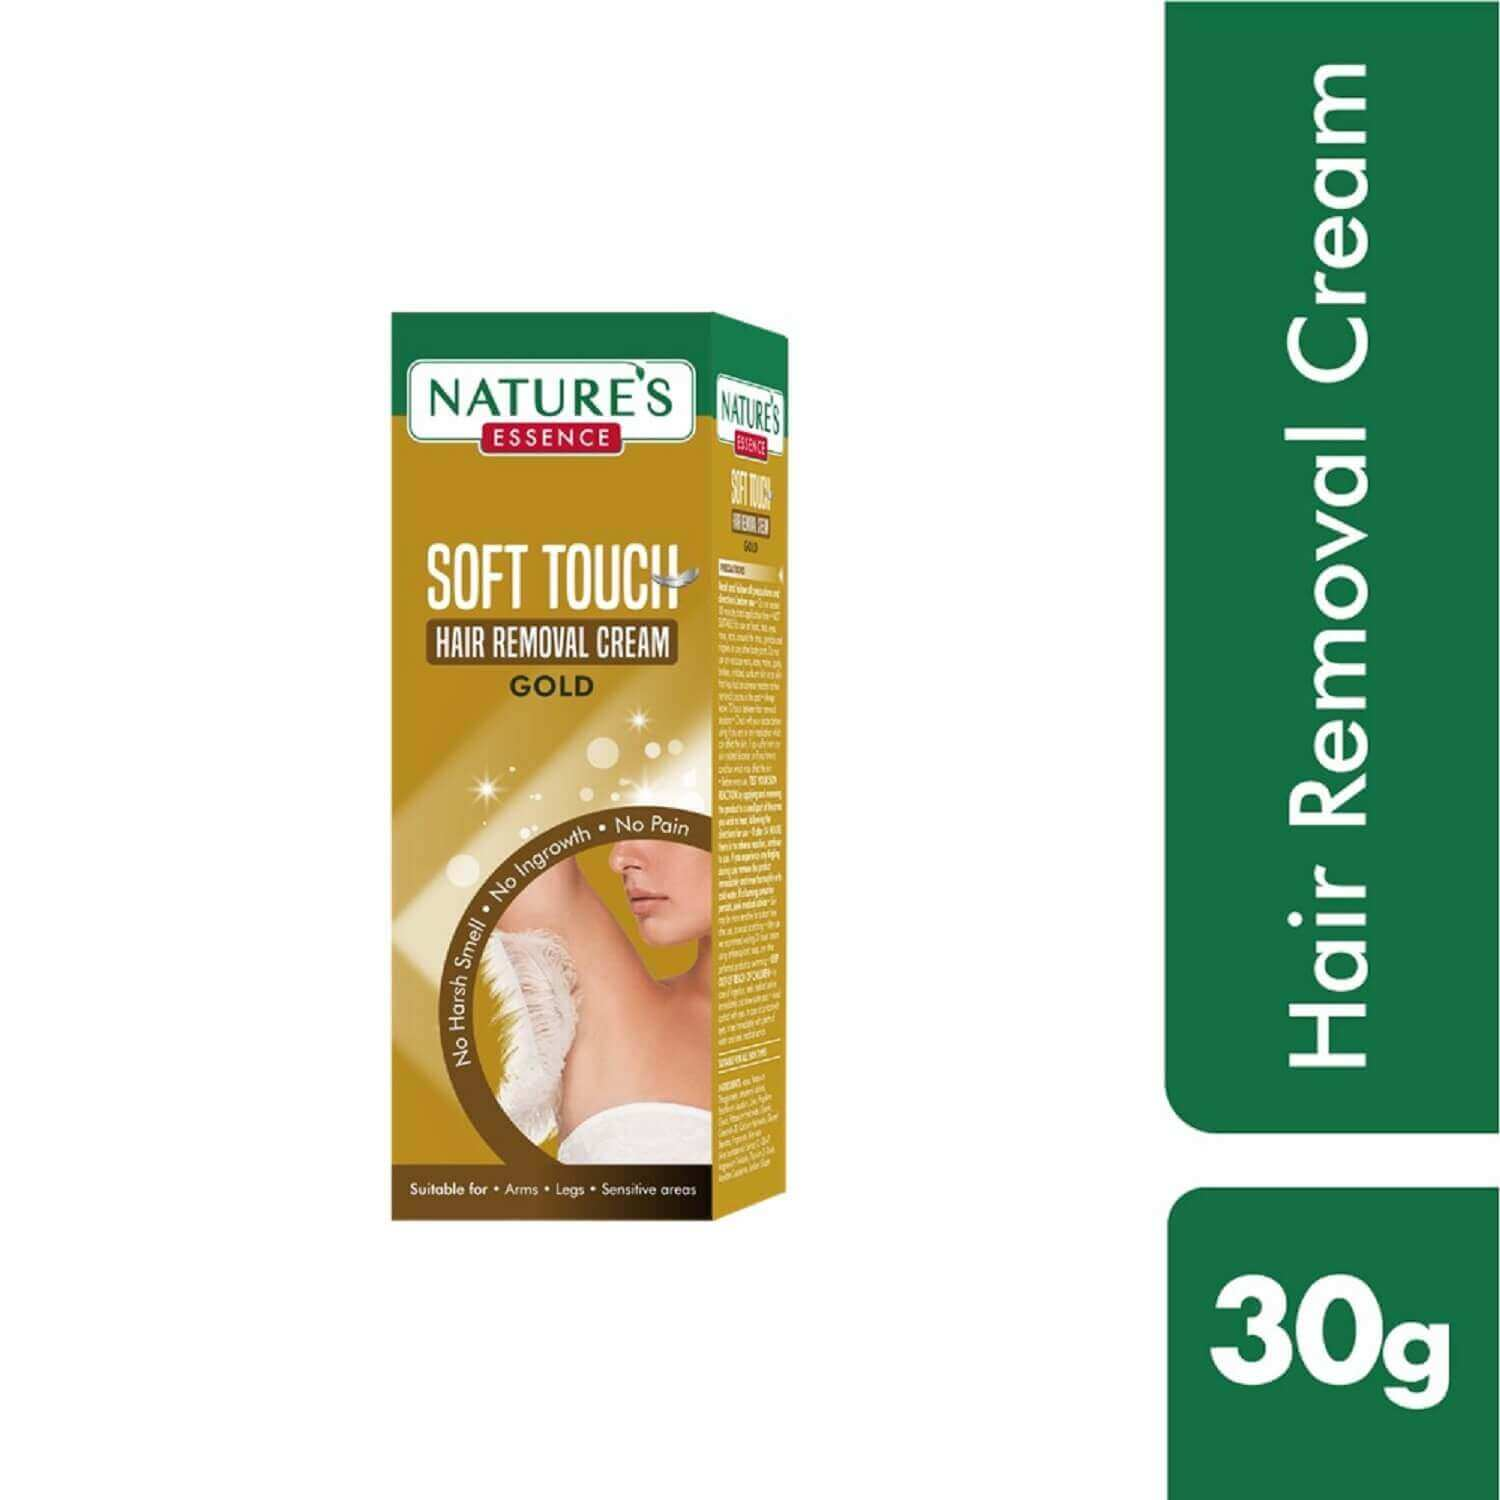 Soft Touch Hair Removal Cream  Gold, 30 gms